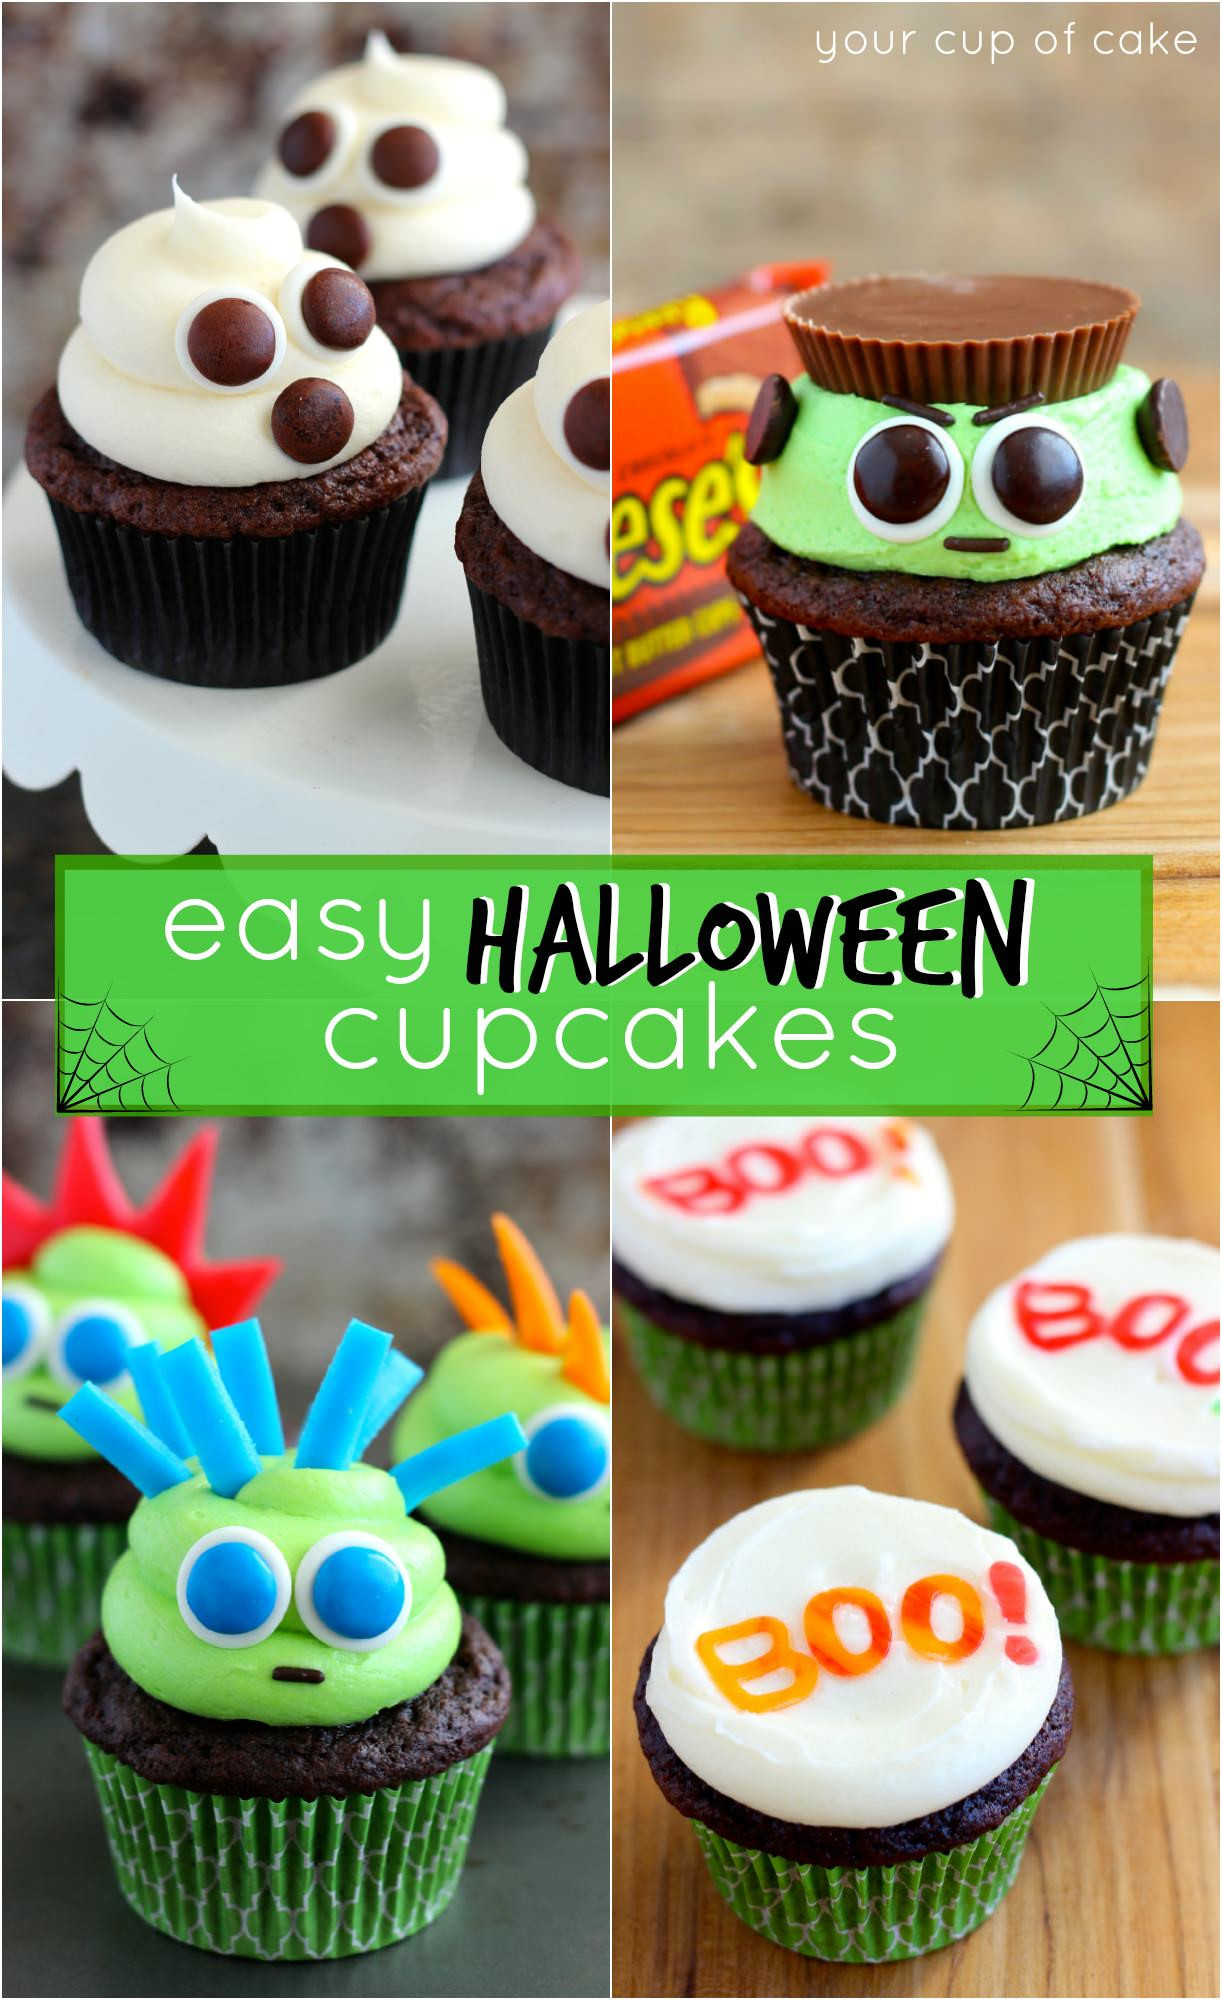 Halloween Cupcakes Designs  Easy Halloween Cupcake Ideas Your Cup of Cake